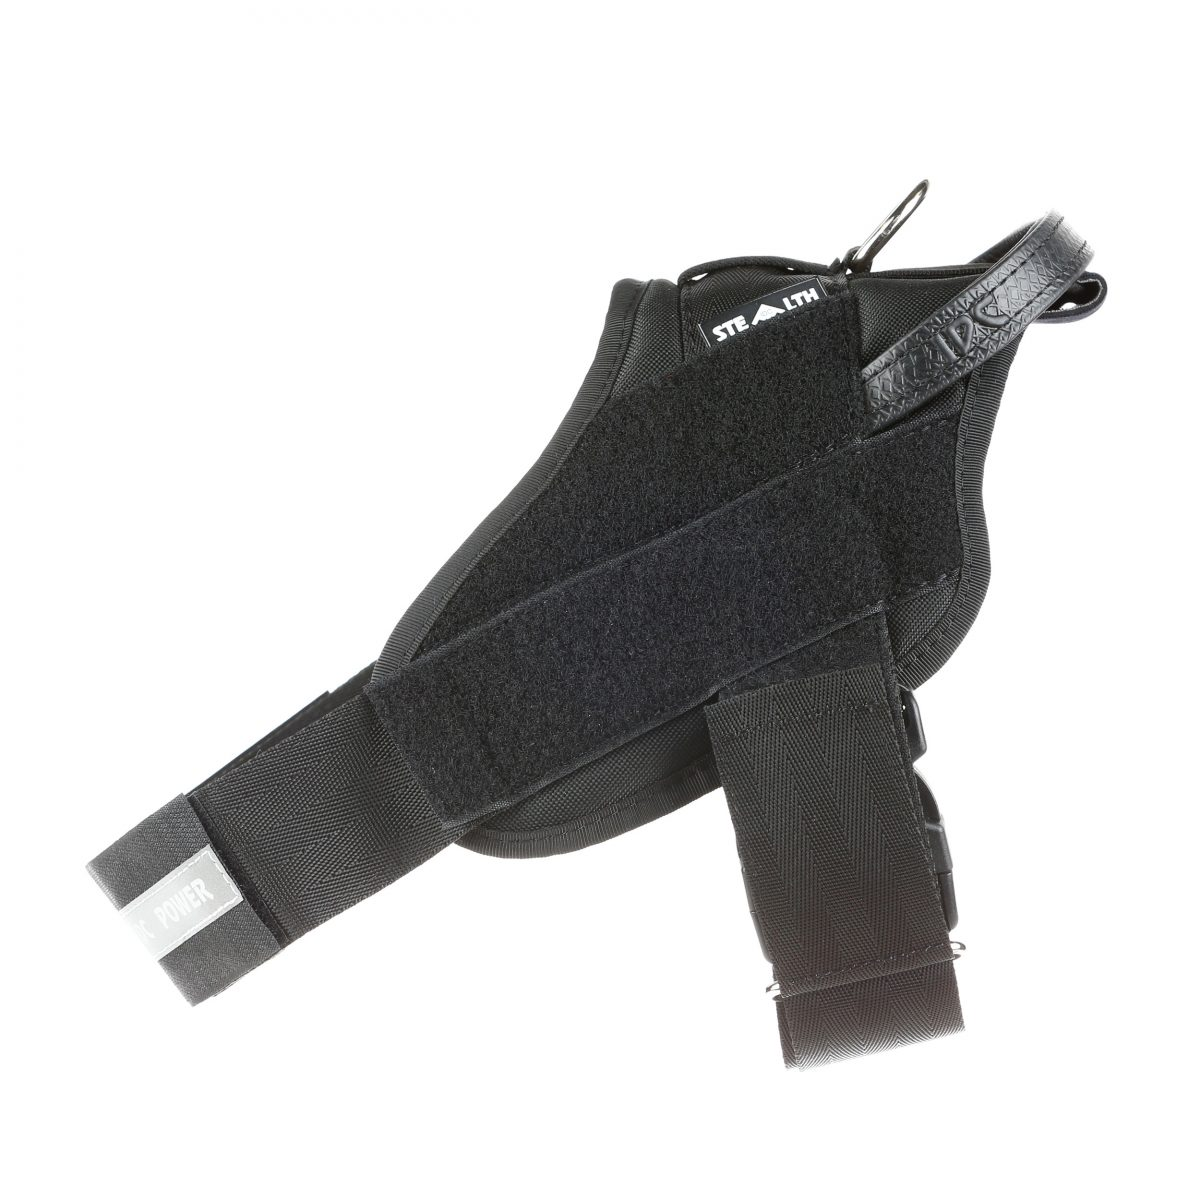 Julius K9 NZ Tactical IDC Stealth Powerharness side view